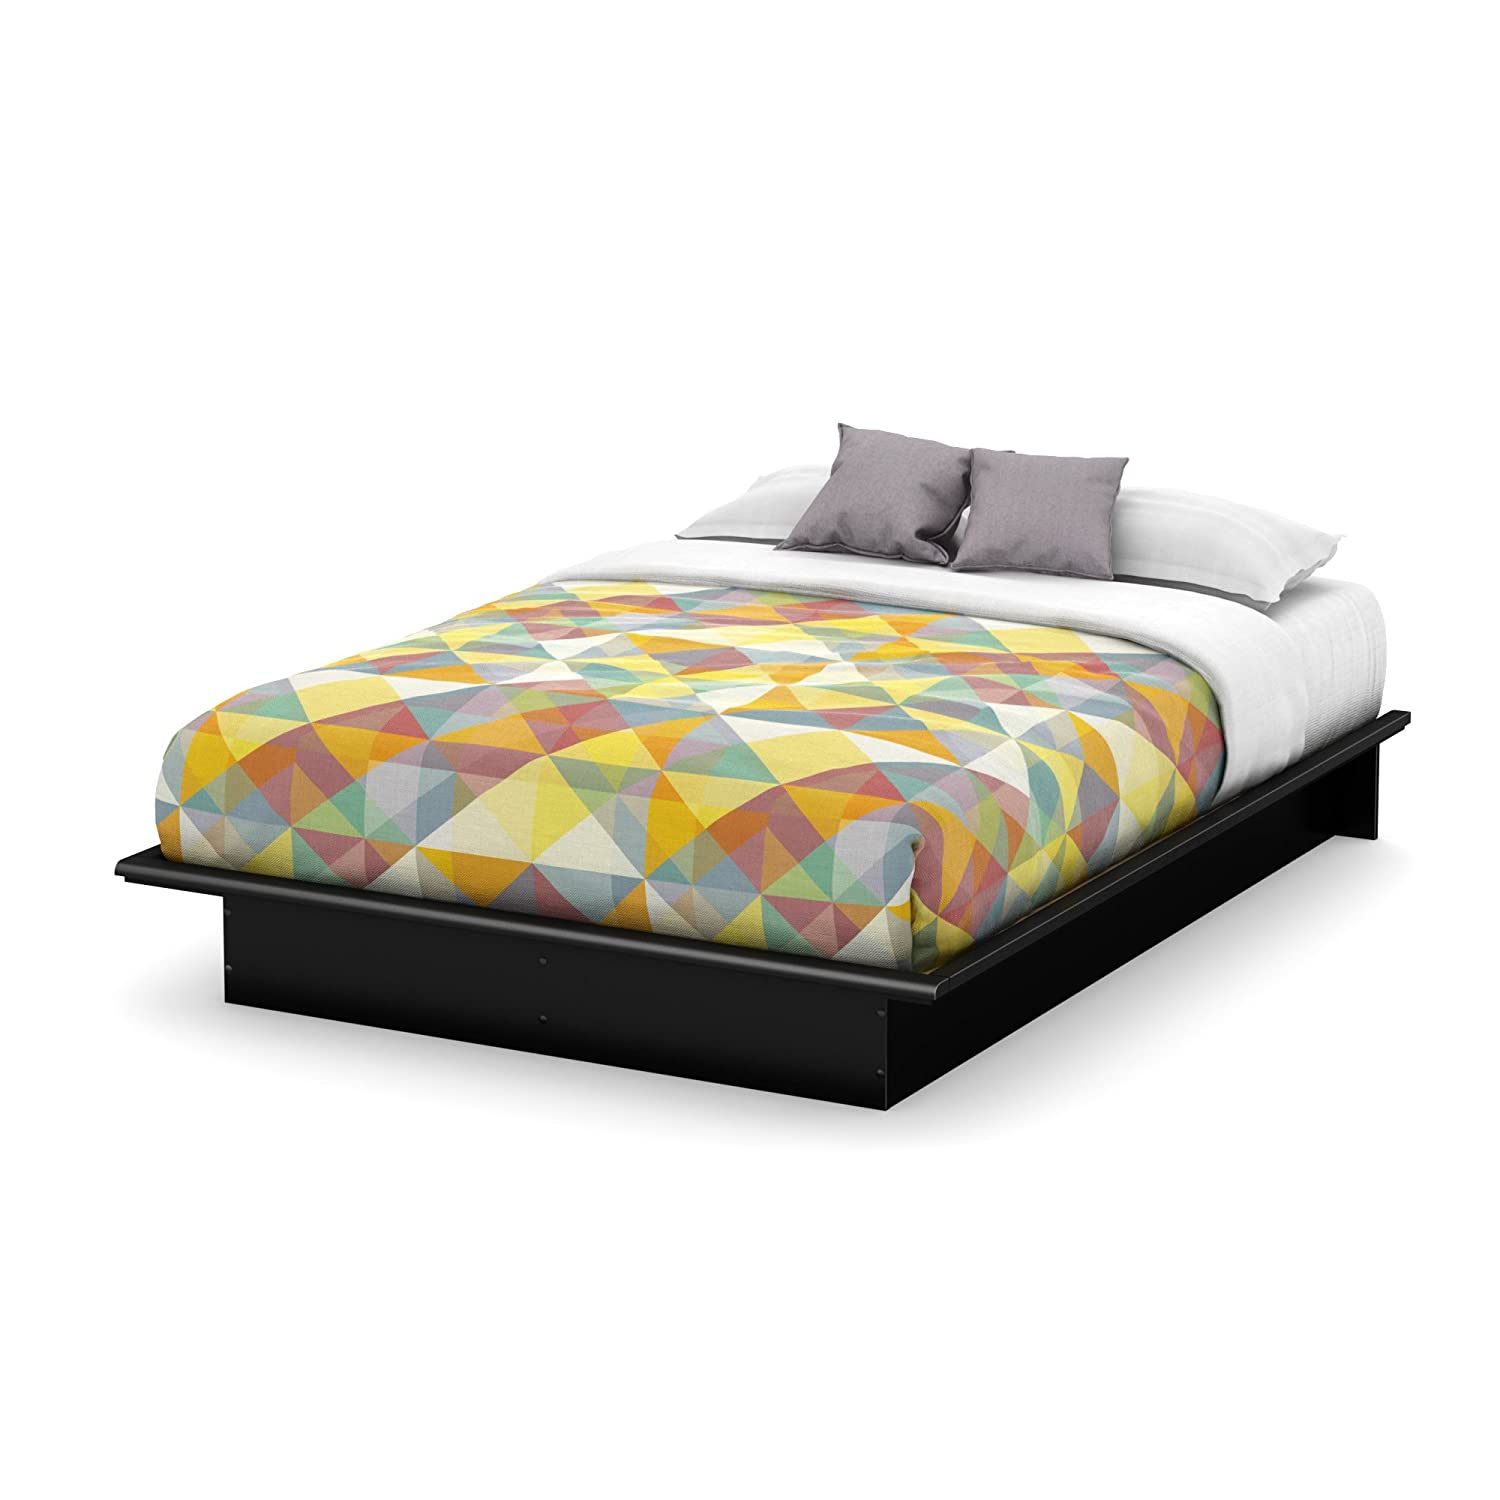 wooden furniture box beds. Amazon.com: South Shore Basic Collection Platform Bed With Moulding - Queen Size Black Contemporary Design By: Kitchen \u0026 Dining Wooden Furniture Box Beds E